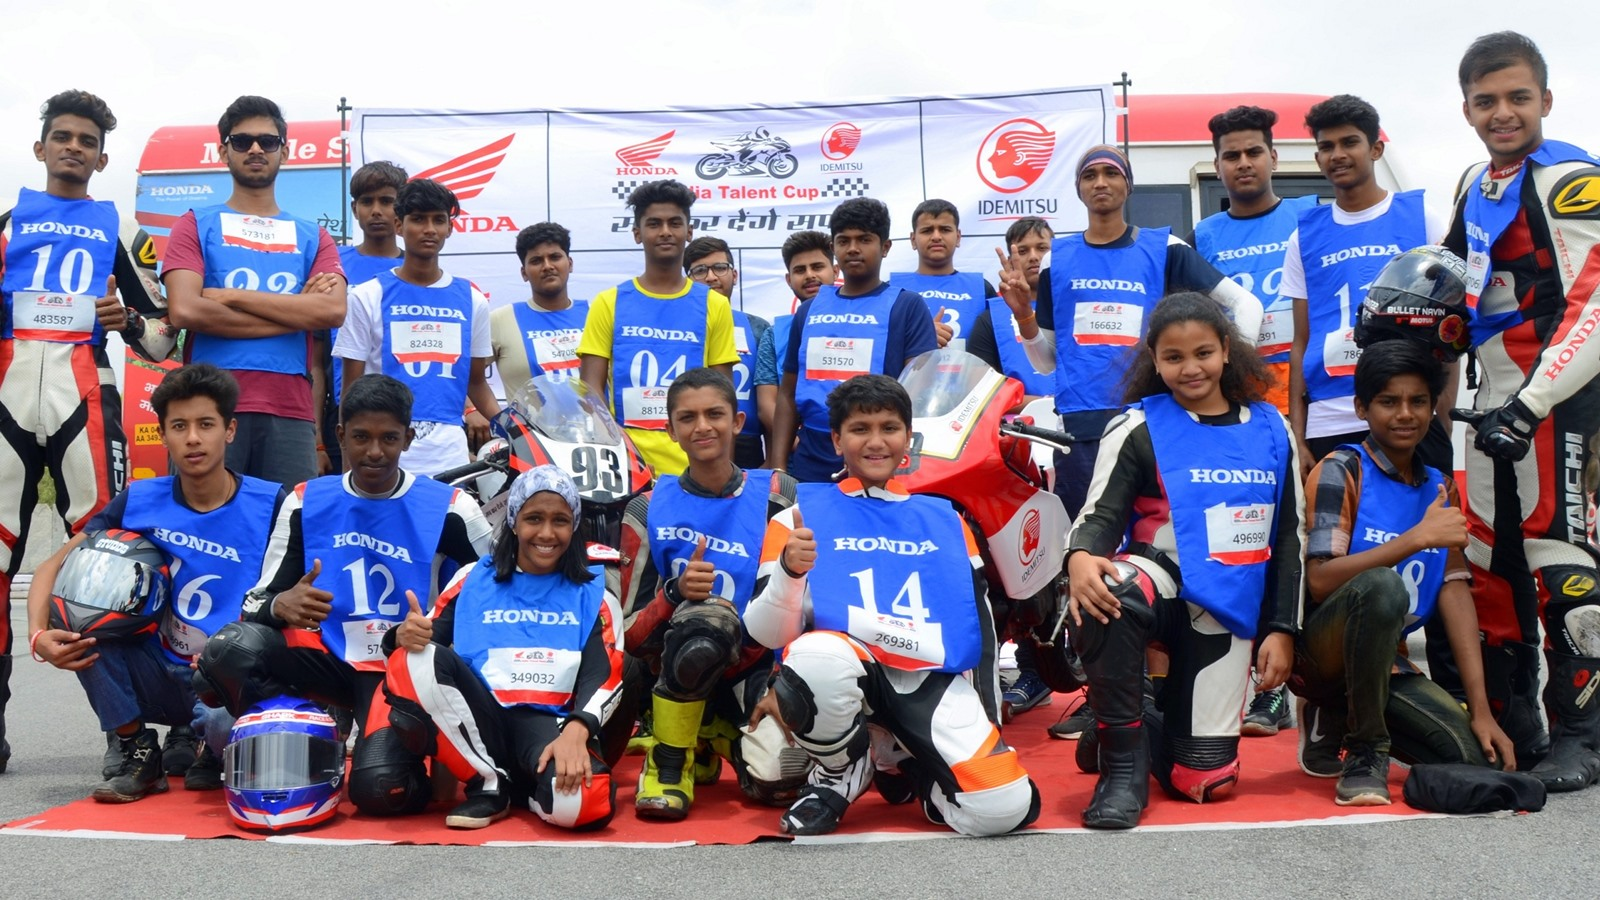 IDEMITSU Honda India Talent Hunt